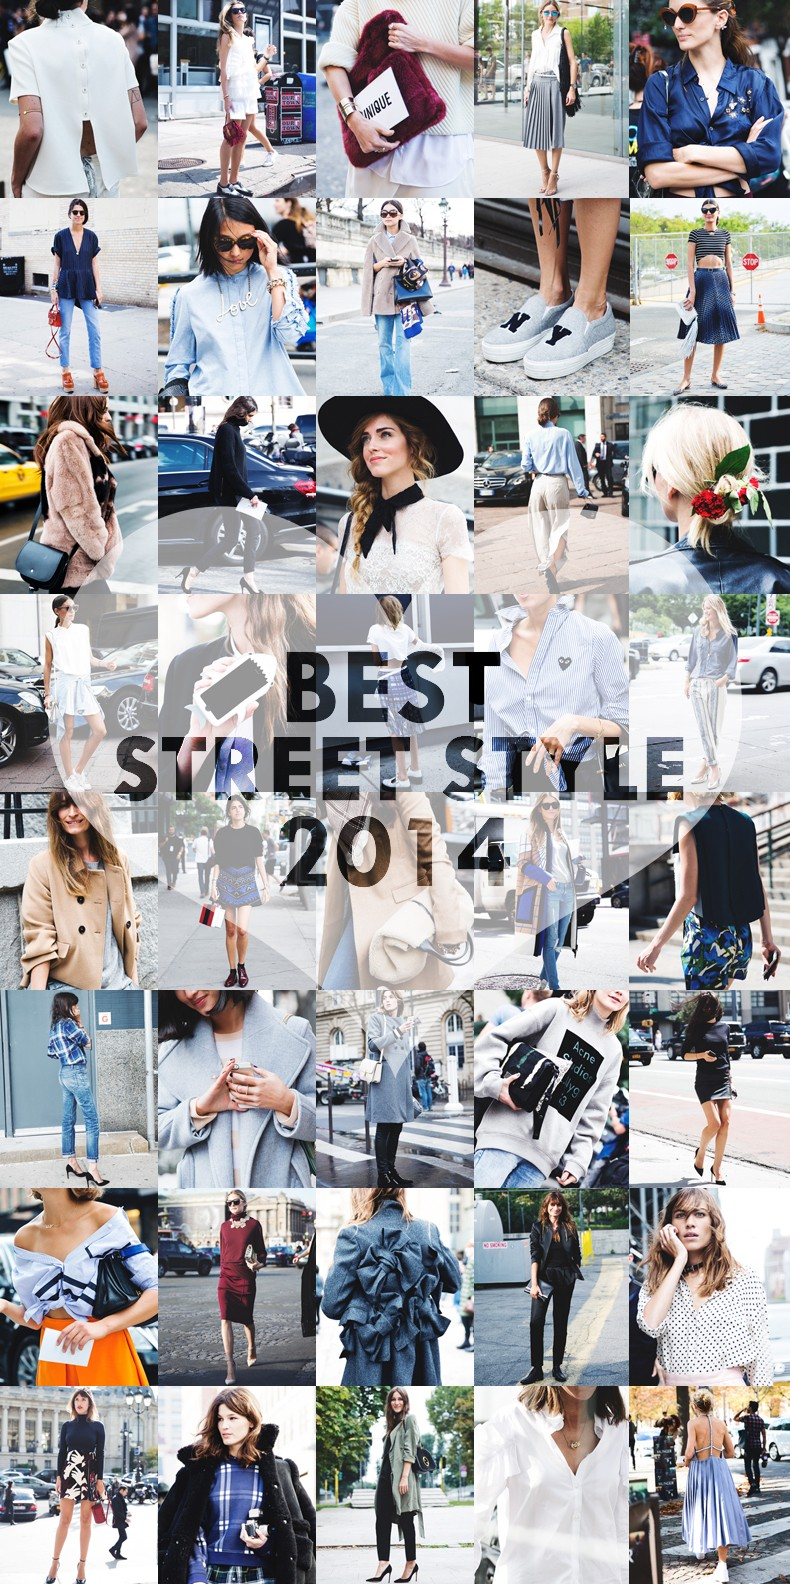 Best_Of_Street_Style-Collage_Vintage-2014-35